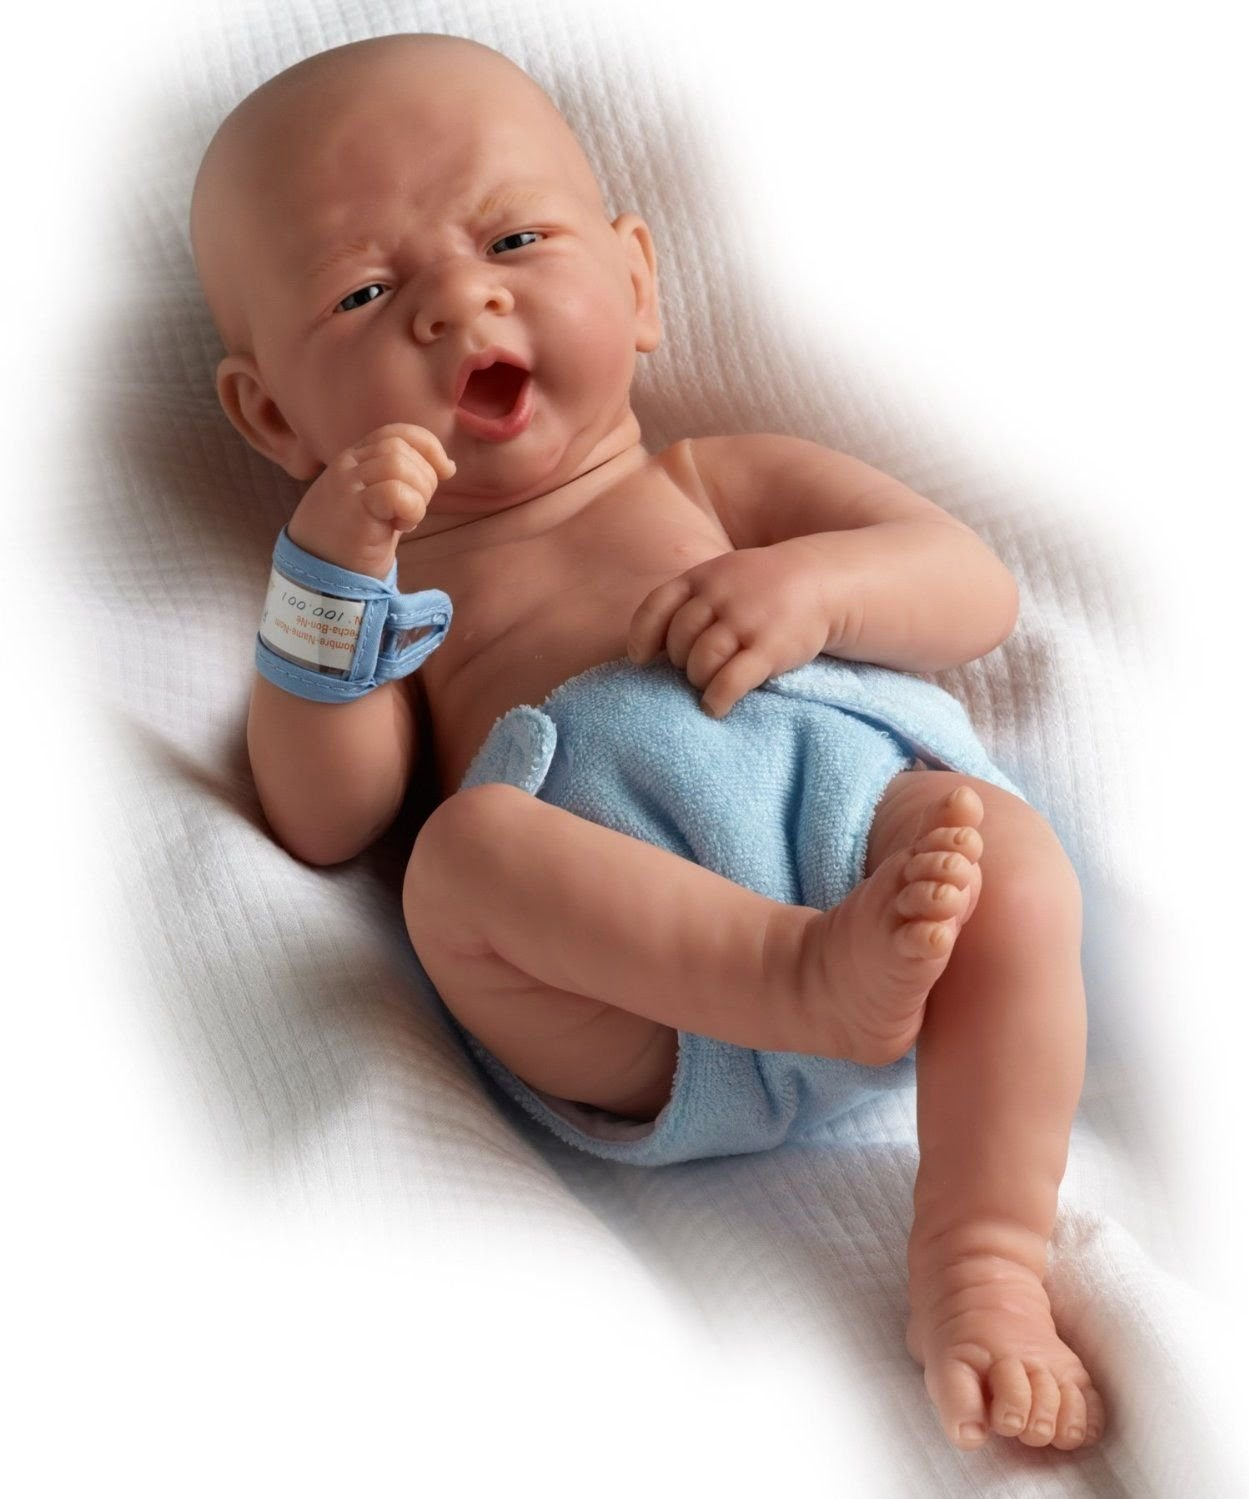 La Newborn Baby Doll by JC Toys - A Reborn - Real Life Like Baby Doll